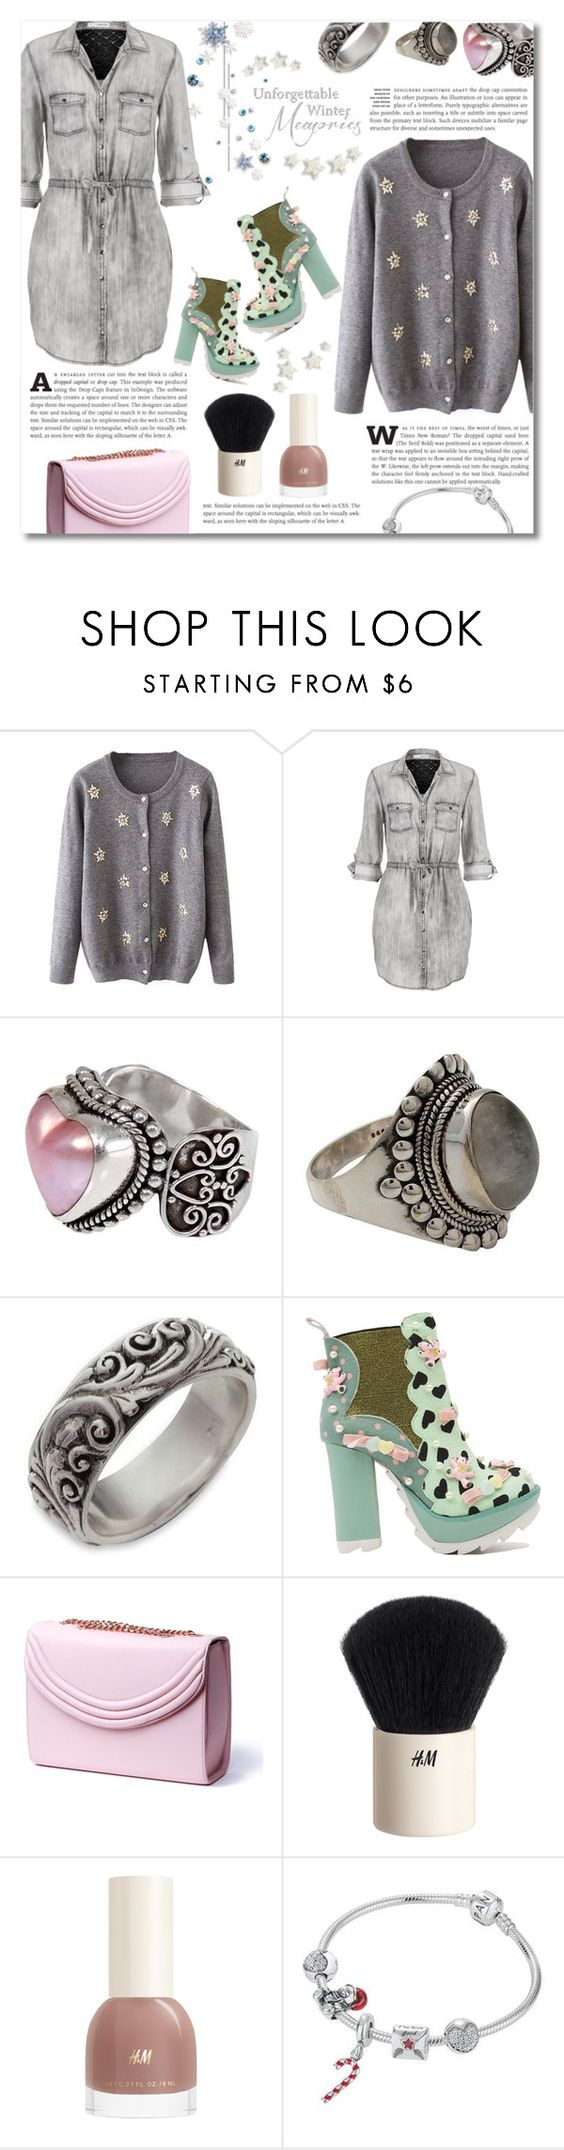 """""""Winter cardigan"""" by dolly-valkyrie ❤ liked on Polyvore featuring maurices, NOVICA, Irregular Choice, Lauren Cecchi and H&M"""